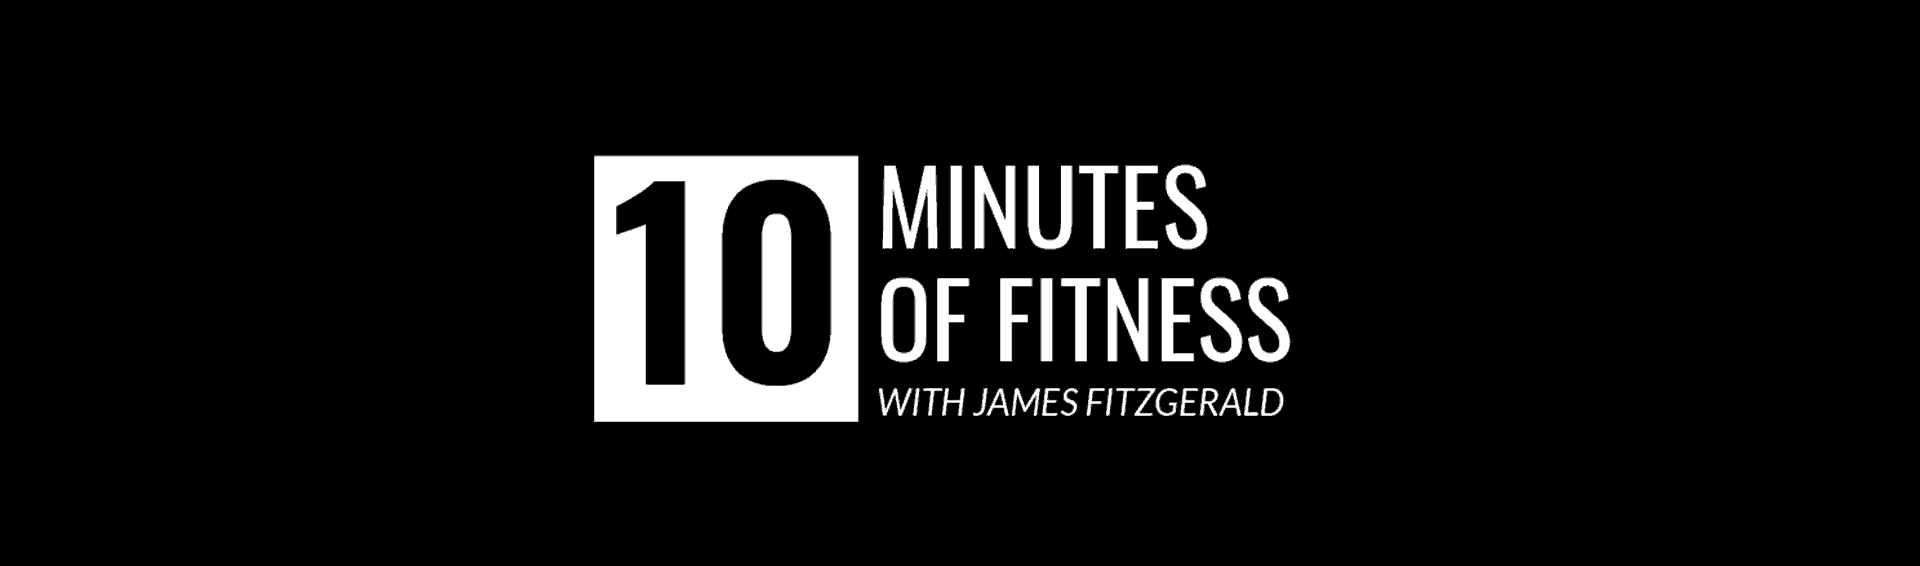 10 Minutes of Fitness: Training clients that are reporting pain?